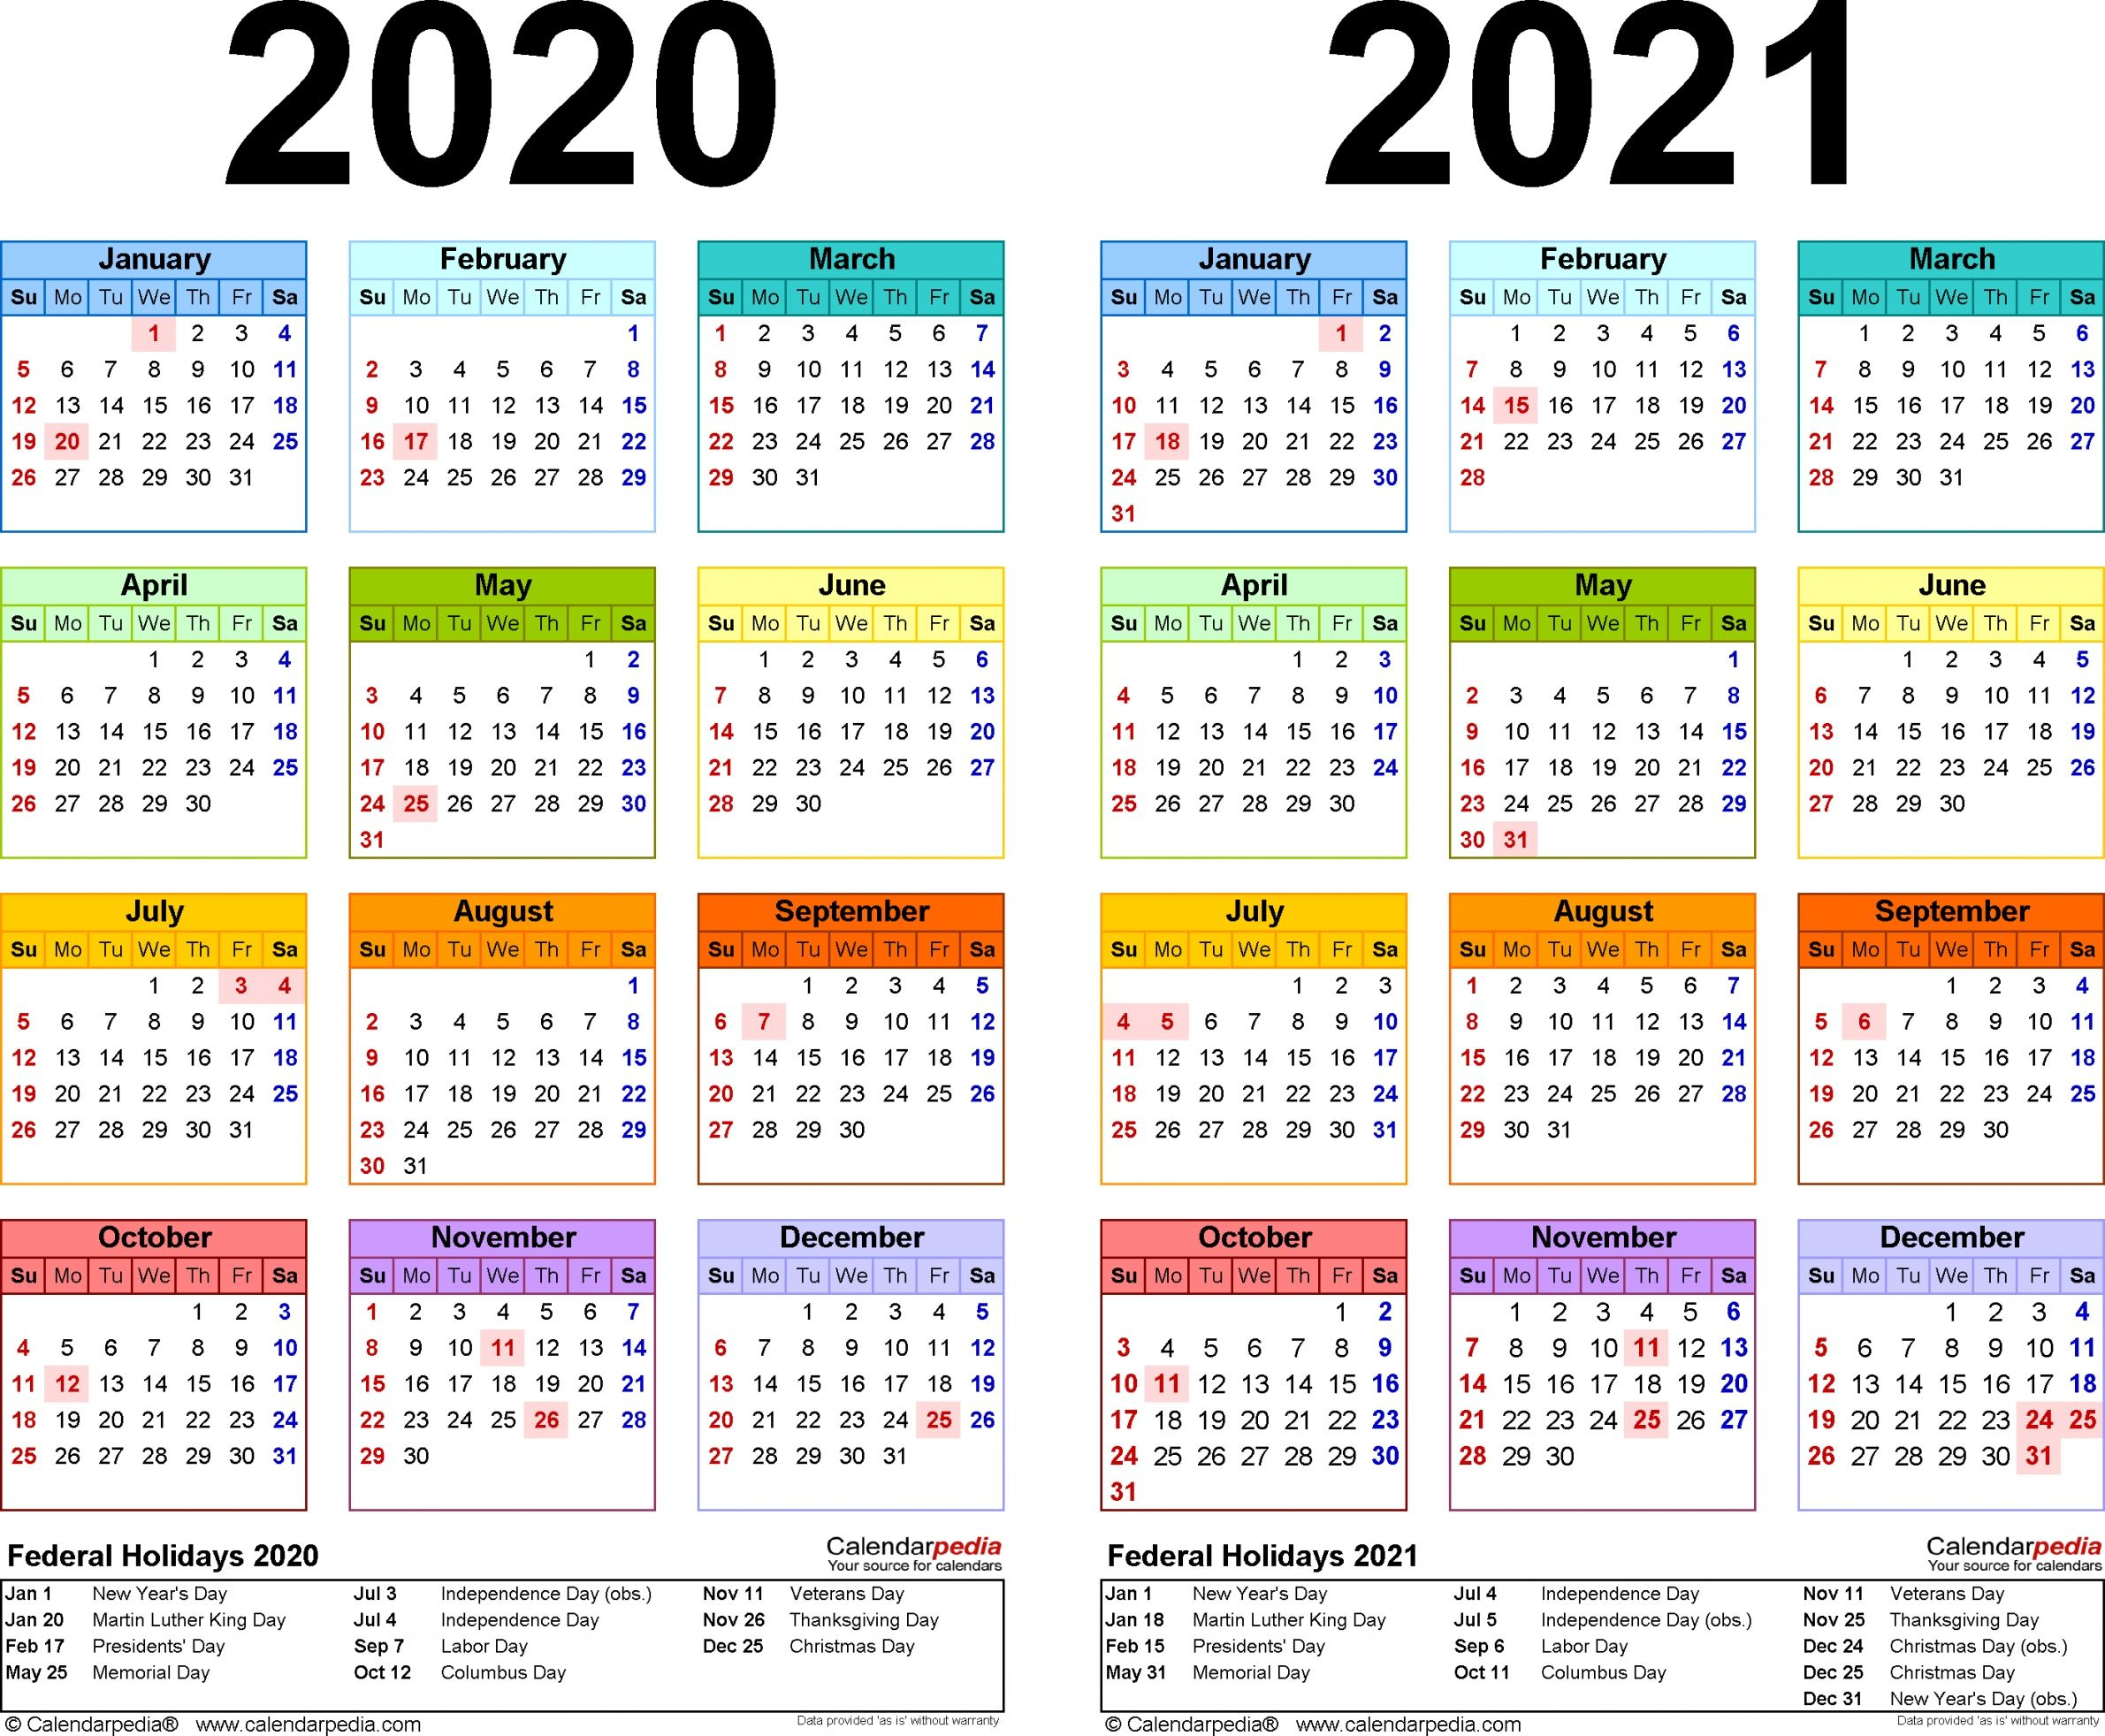 Delightful To Be Able To My Blog Site, On This Period I'M in Two Year Planner 2021-2021: Monthly